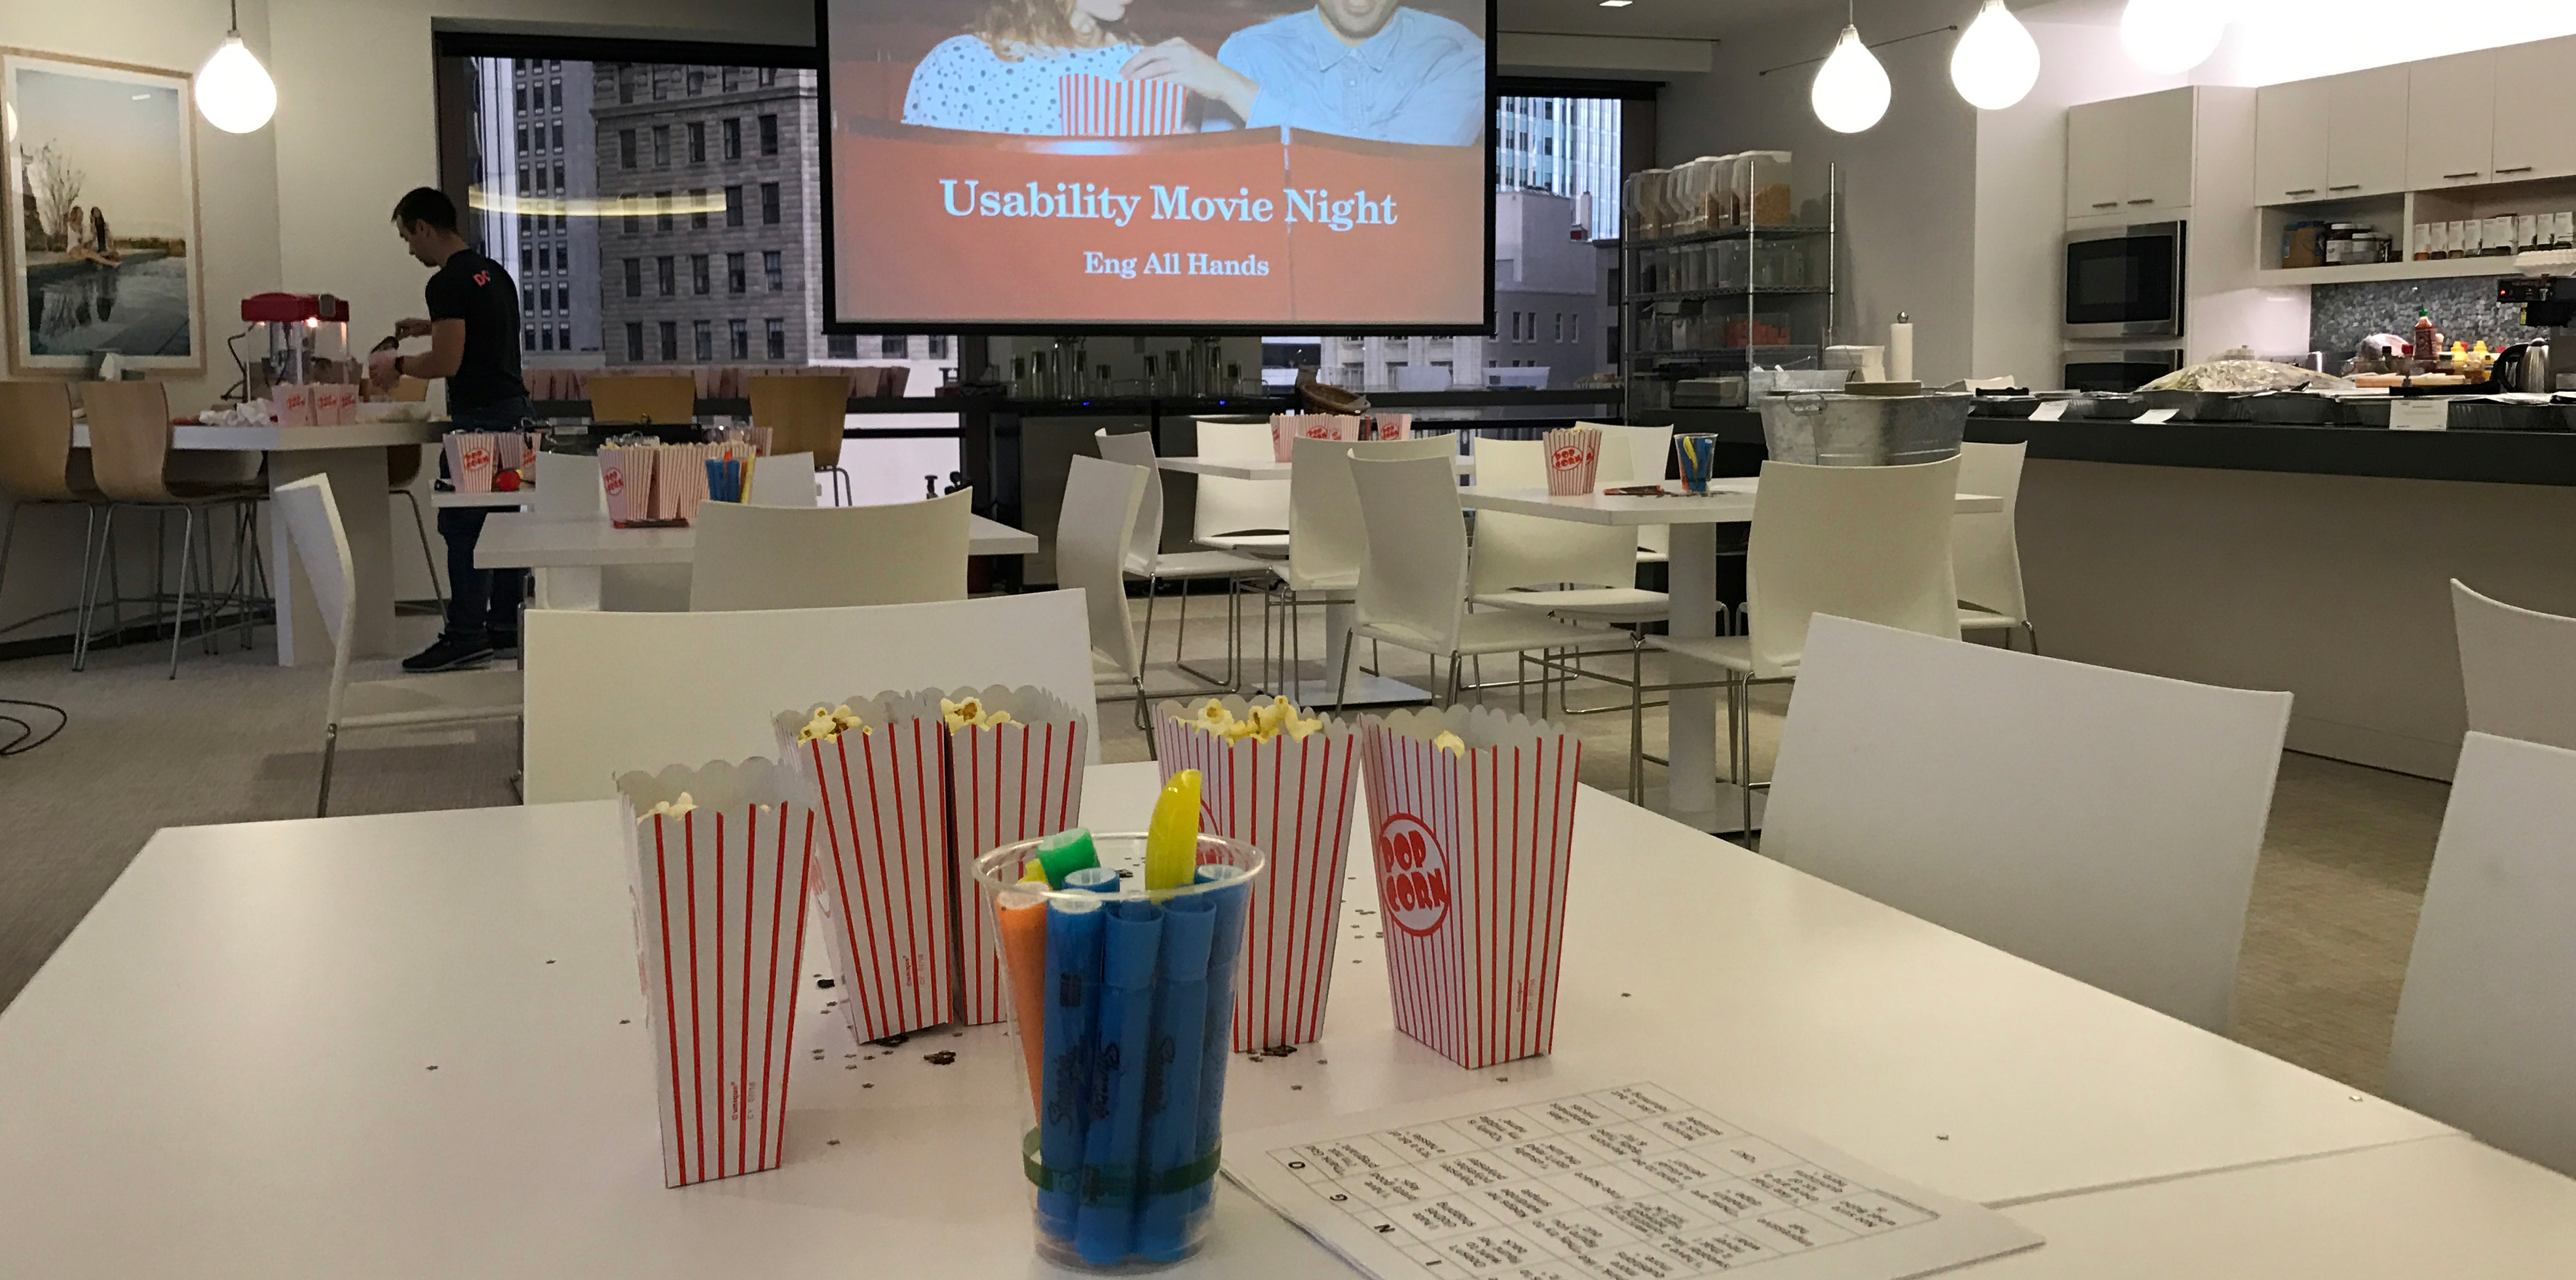 Stitch Fix cafe set up for movie night: Popcorn, bingo boards and markers on the tables.